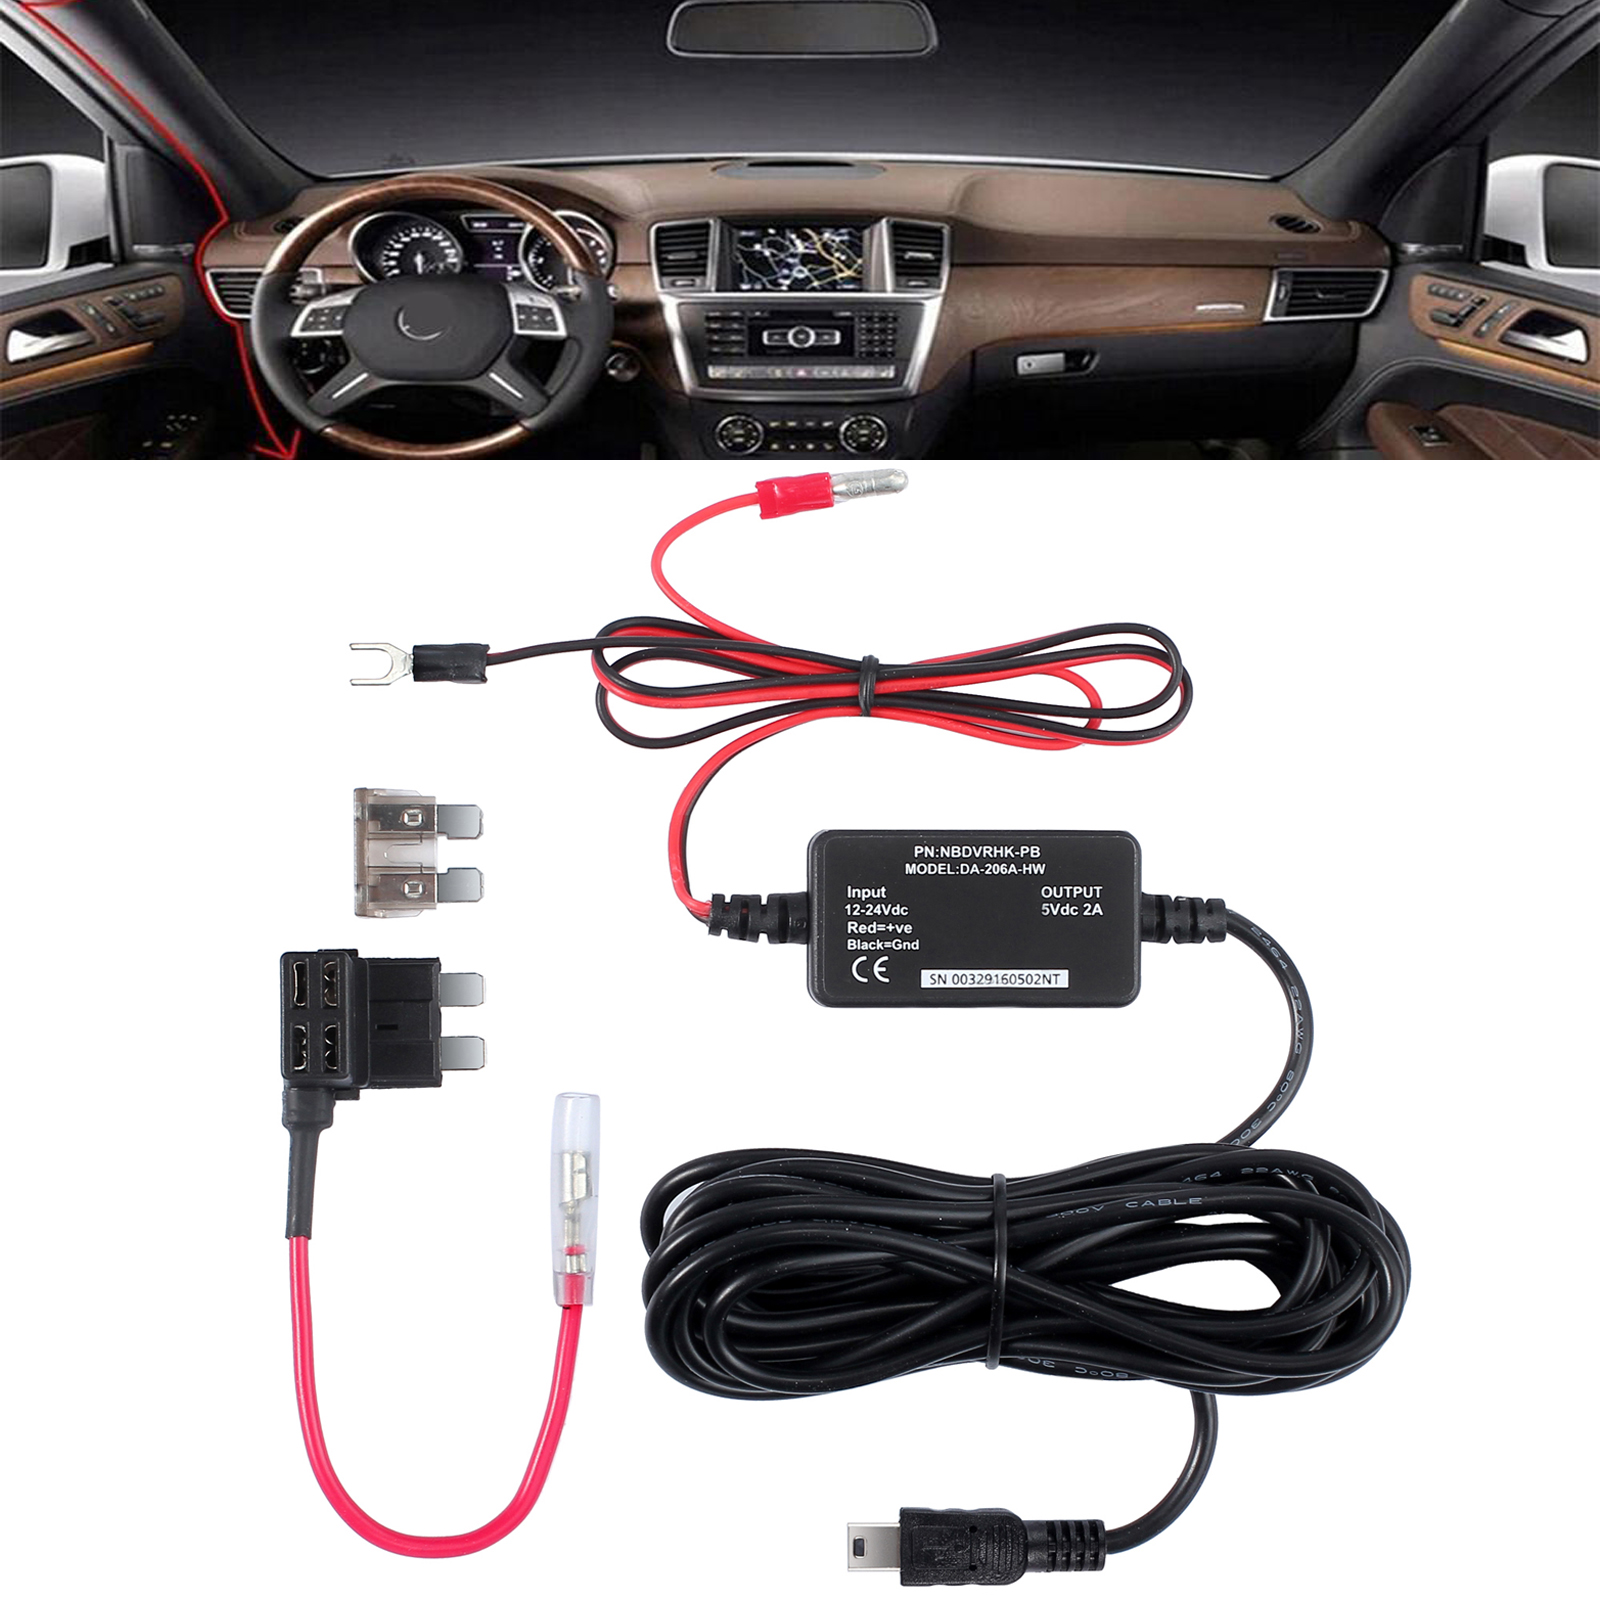 Hard Wire Kit Car Dash Cam Camera For Nextbase 212 312gw 402g 412 Dc Plug Automotive Wiring Harness Cigar Custom Molded Cable Assembly This Nextbase512g 412312gw 302g 202 101 And Duocar No Need From Cigarette Lighter Socket